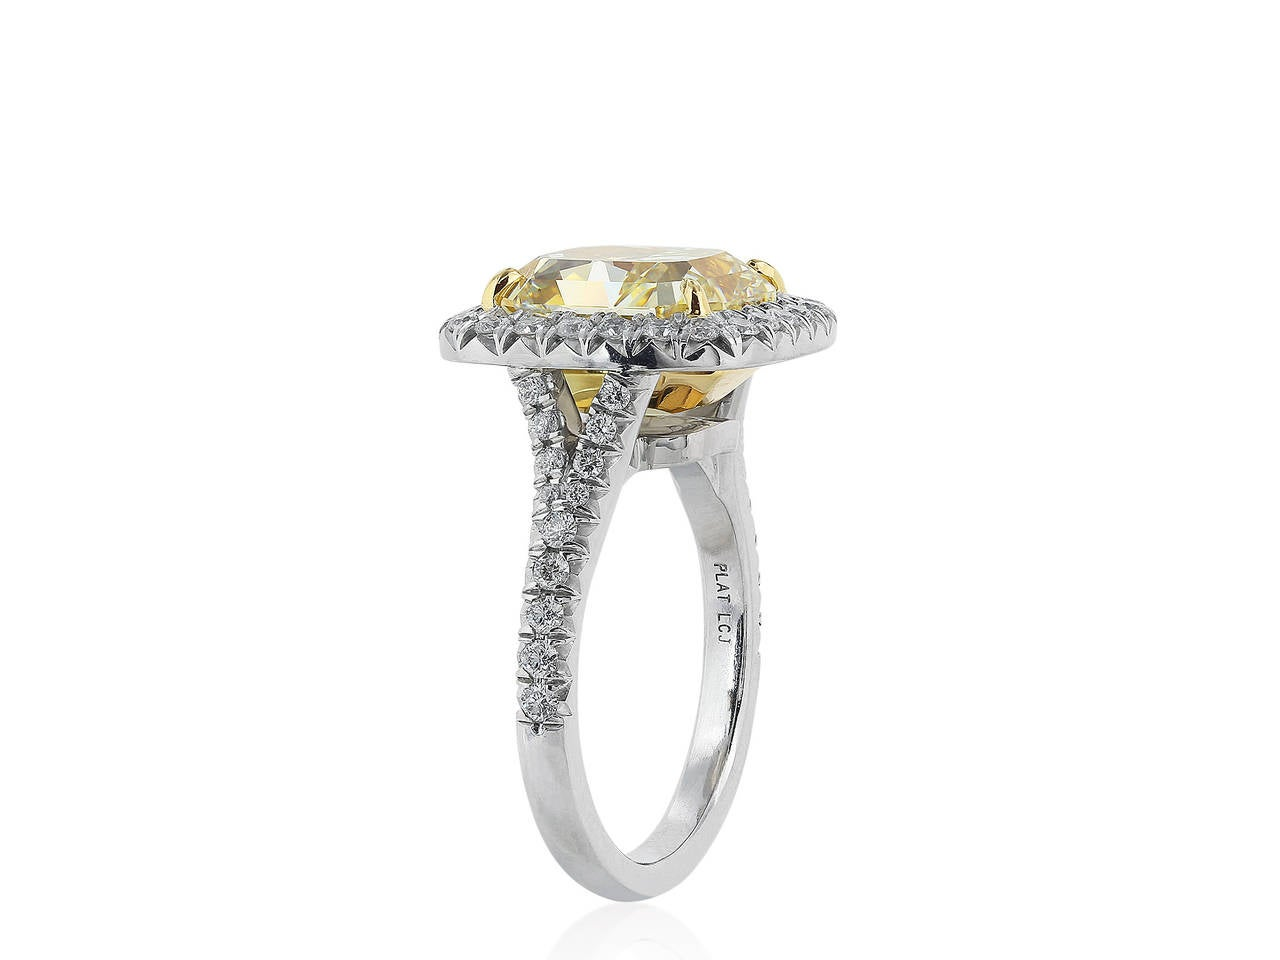 Radiant Cut GIA Cert. 5.27 Carat Fancy Yellow Diamond Engagement Gold Platinum Ring For Sale